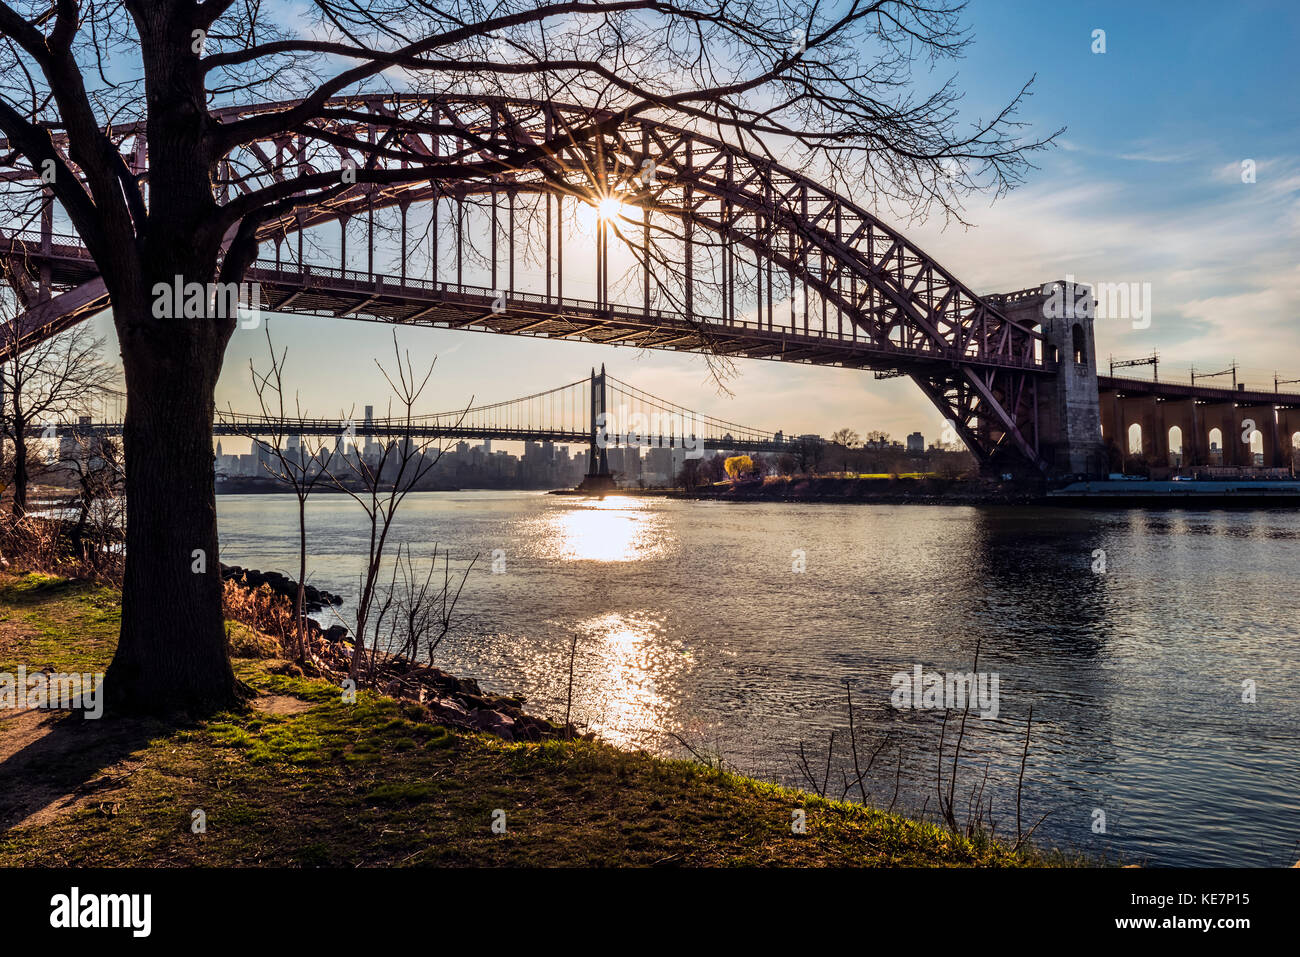 Hell Gate And Rfk Triboro Bridges At Sunset From Ralph Demarco Park; Queens, New York, United States Of America - Stock Image